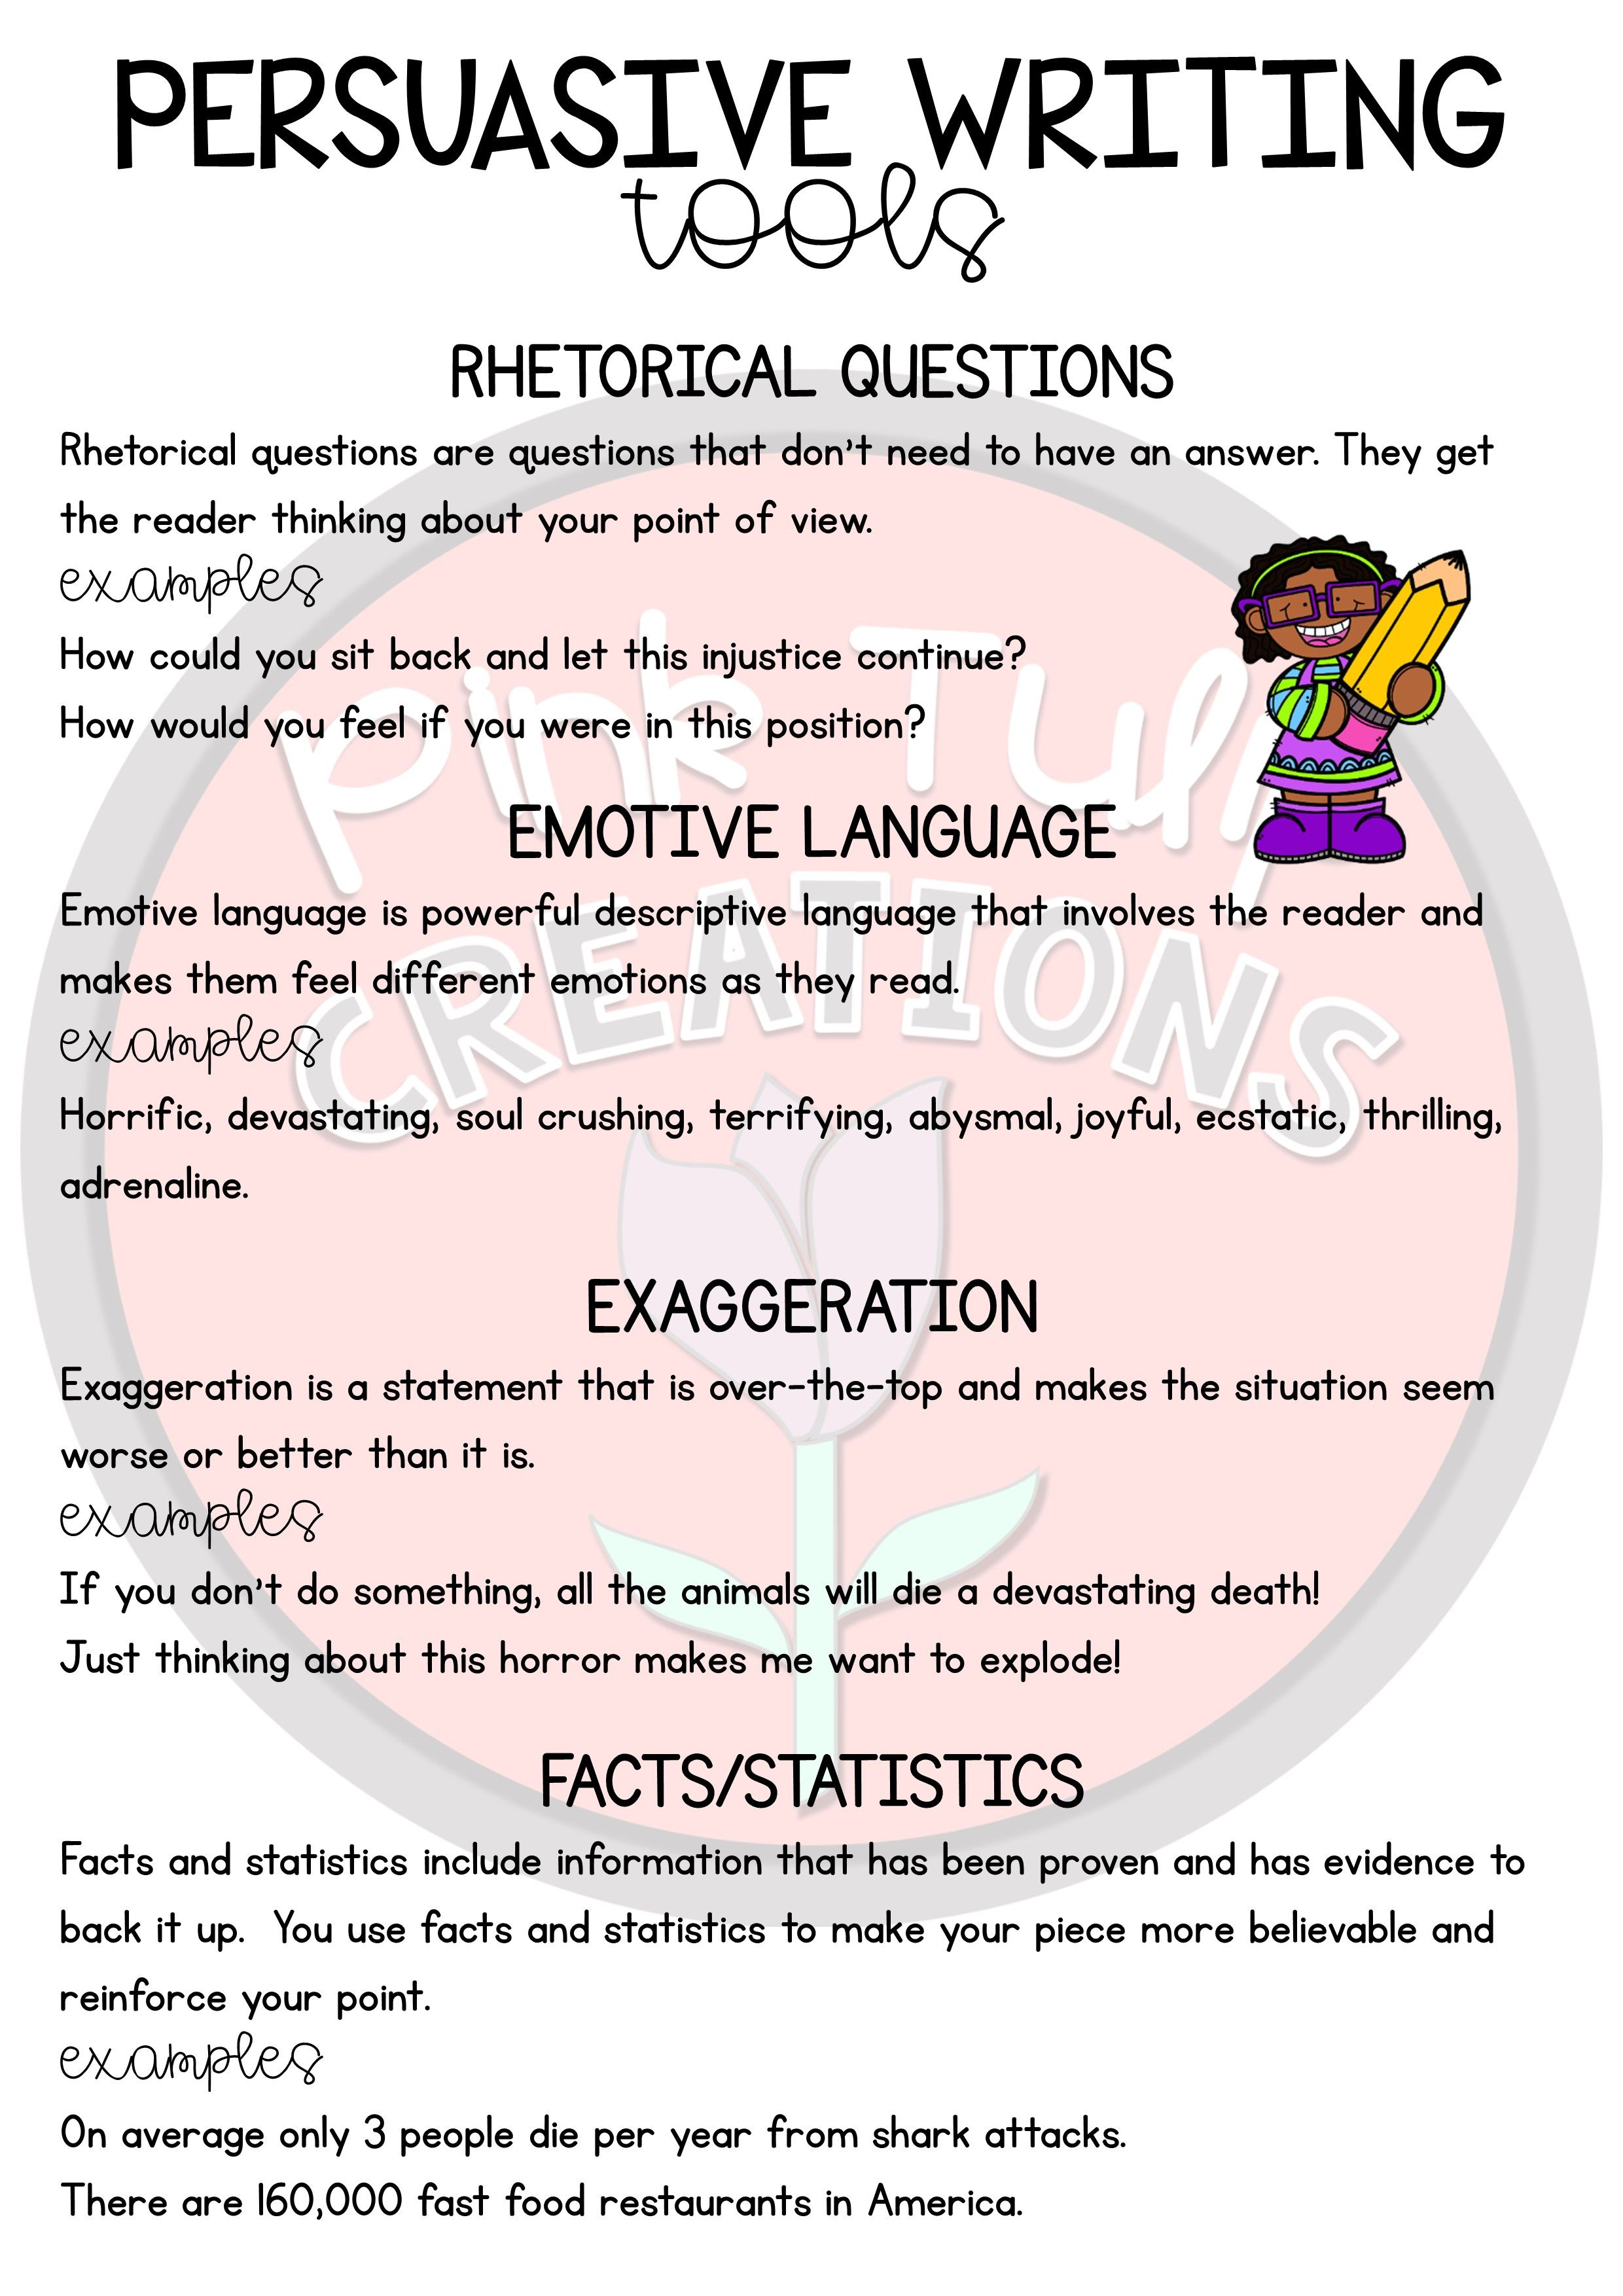 010 Essay Example How Are Persuasive And An Expository Singular A Different Select The Correct Answer. Full